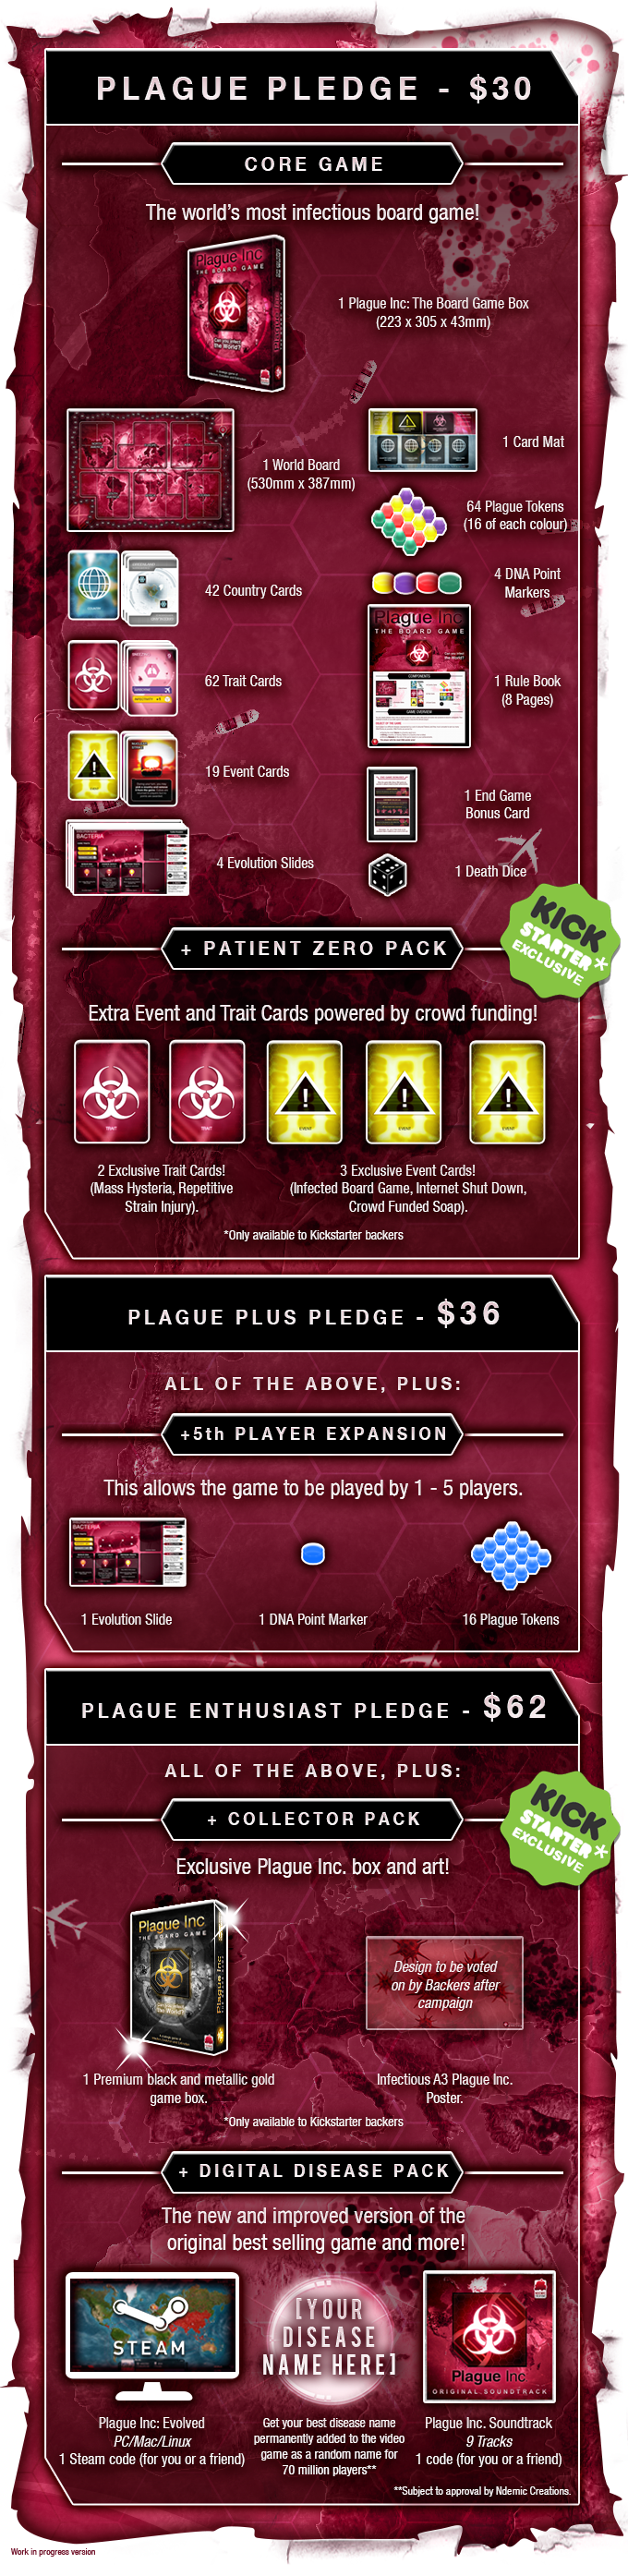 plague inc full version apk ios